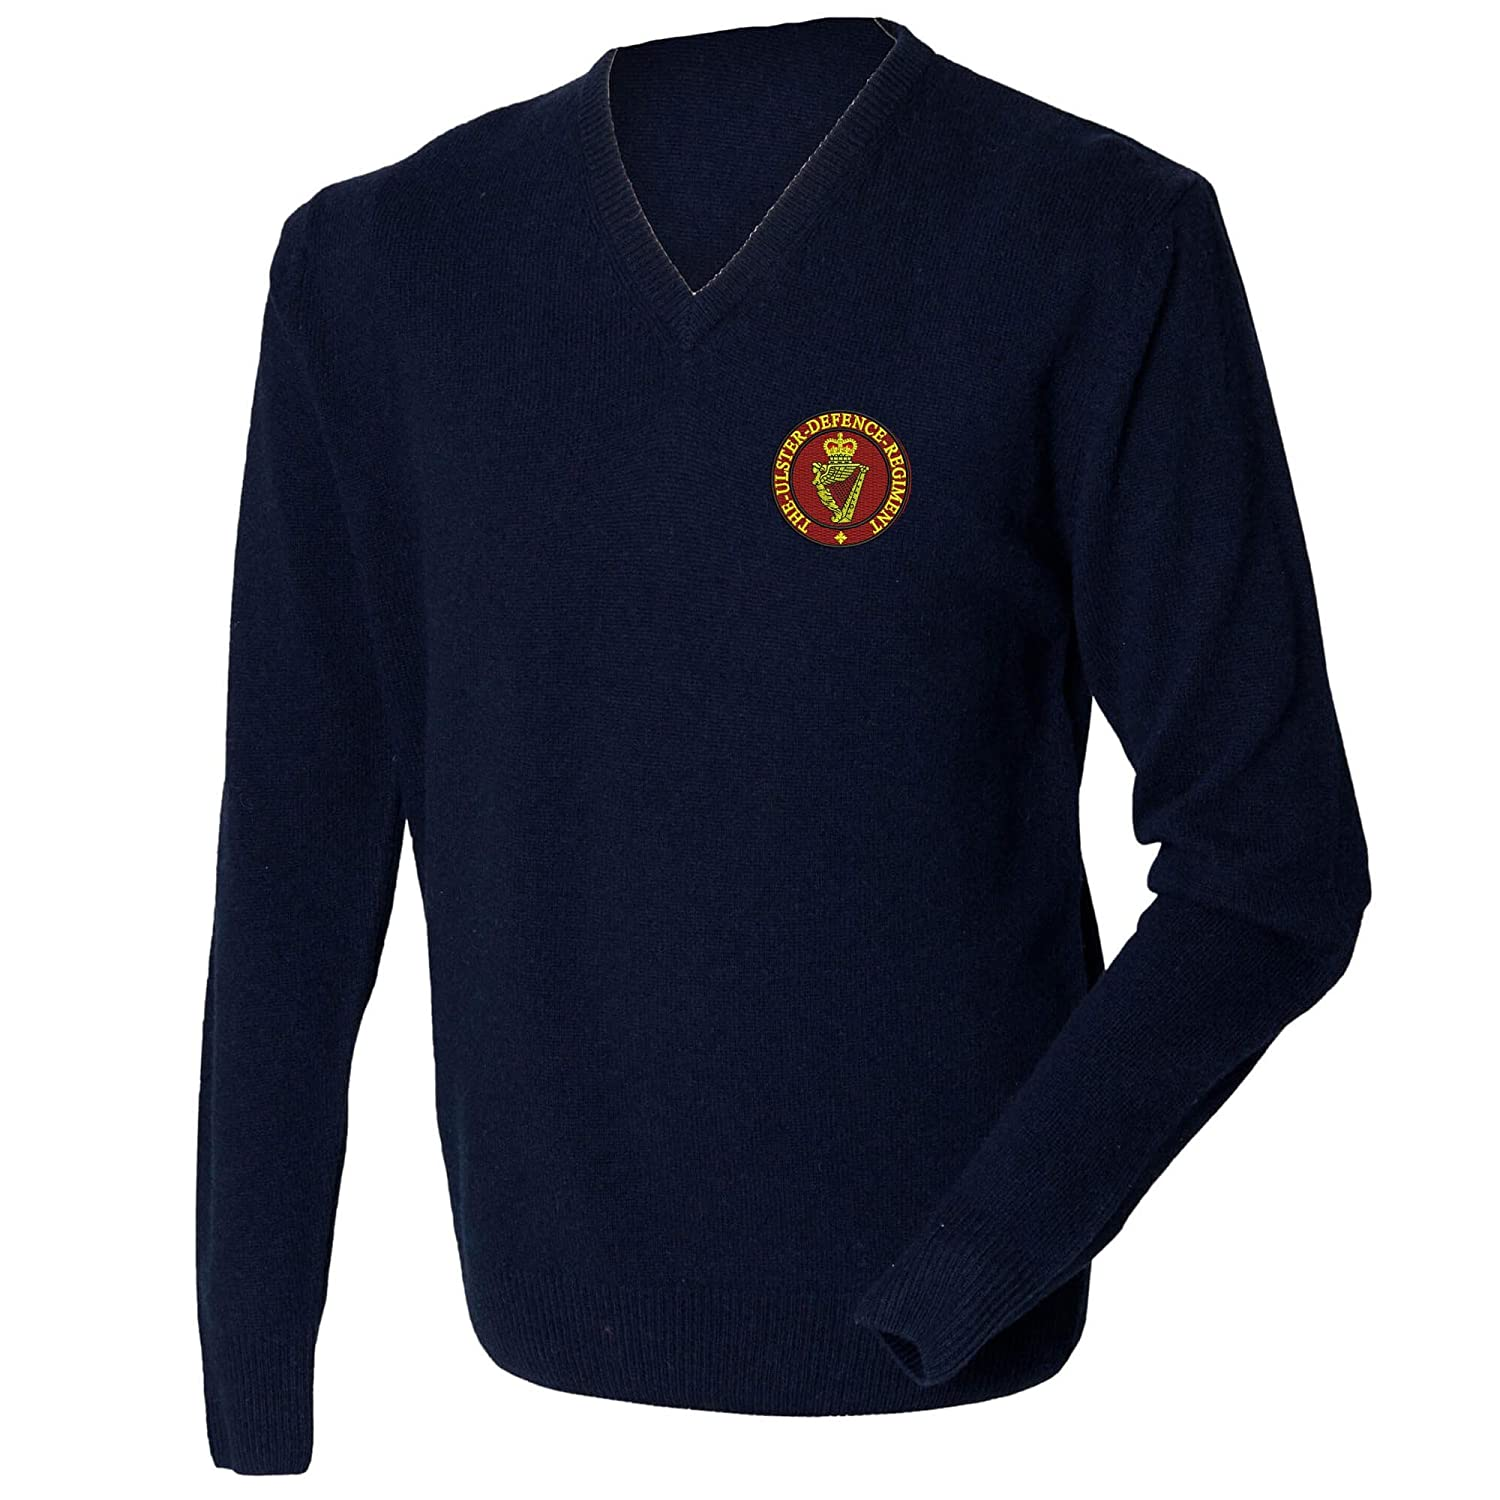 Ulster Defence Lambswool V-neck Jumper.